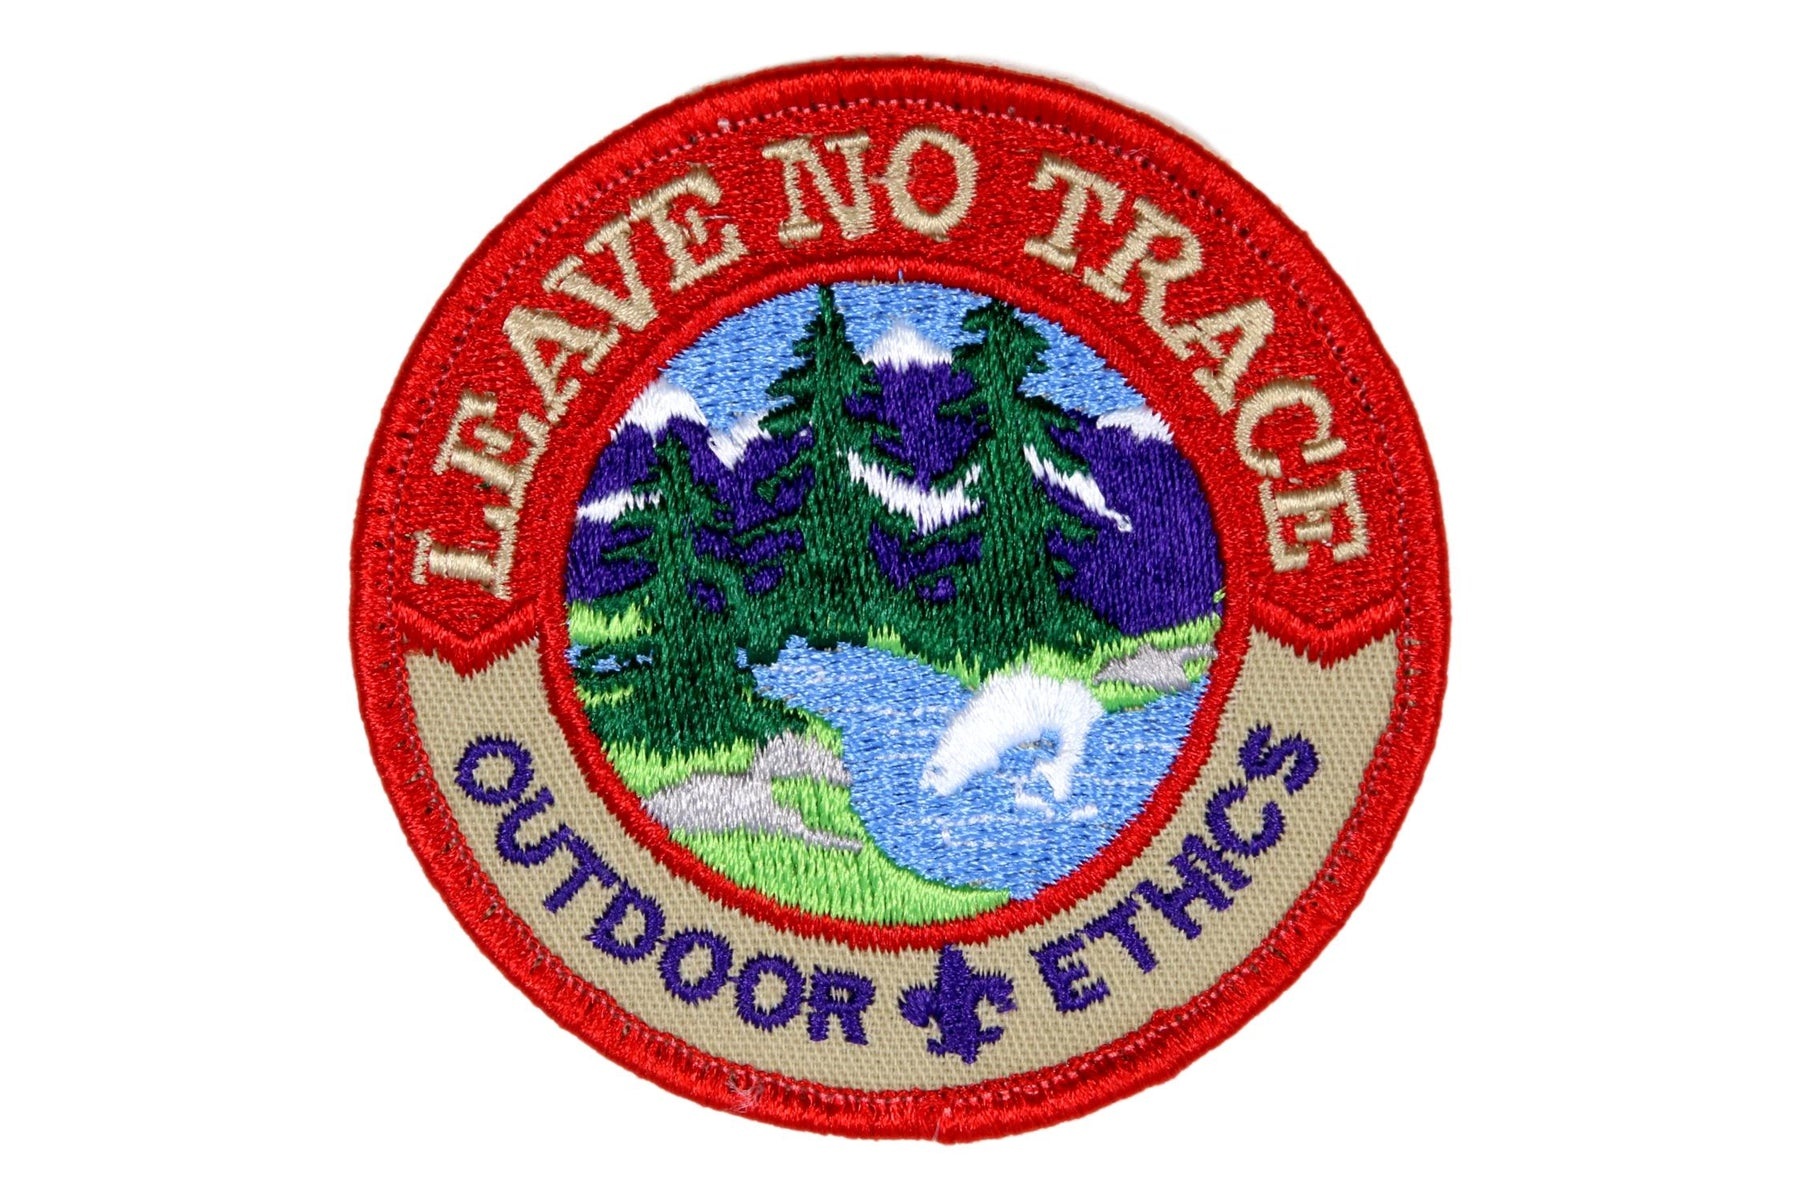 Leave No Trace Outdoor Ethics Patch